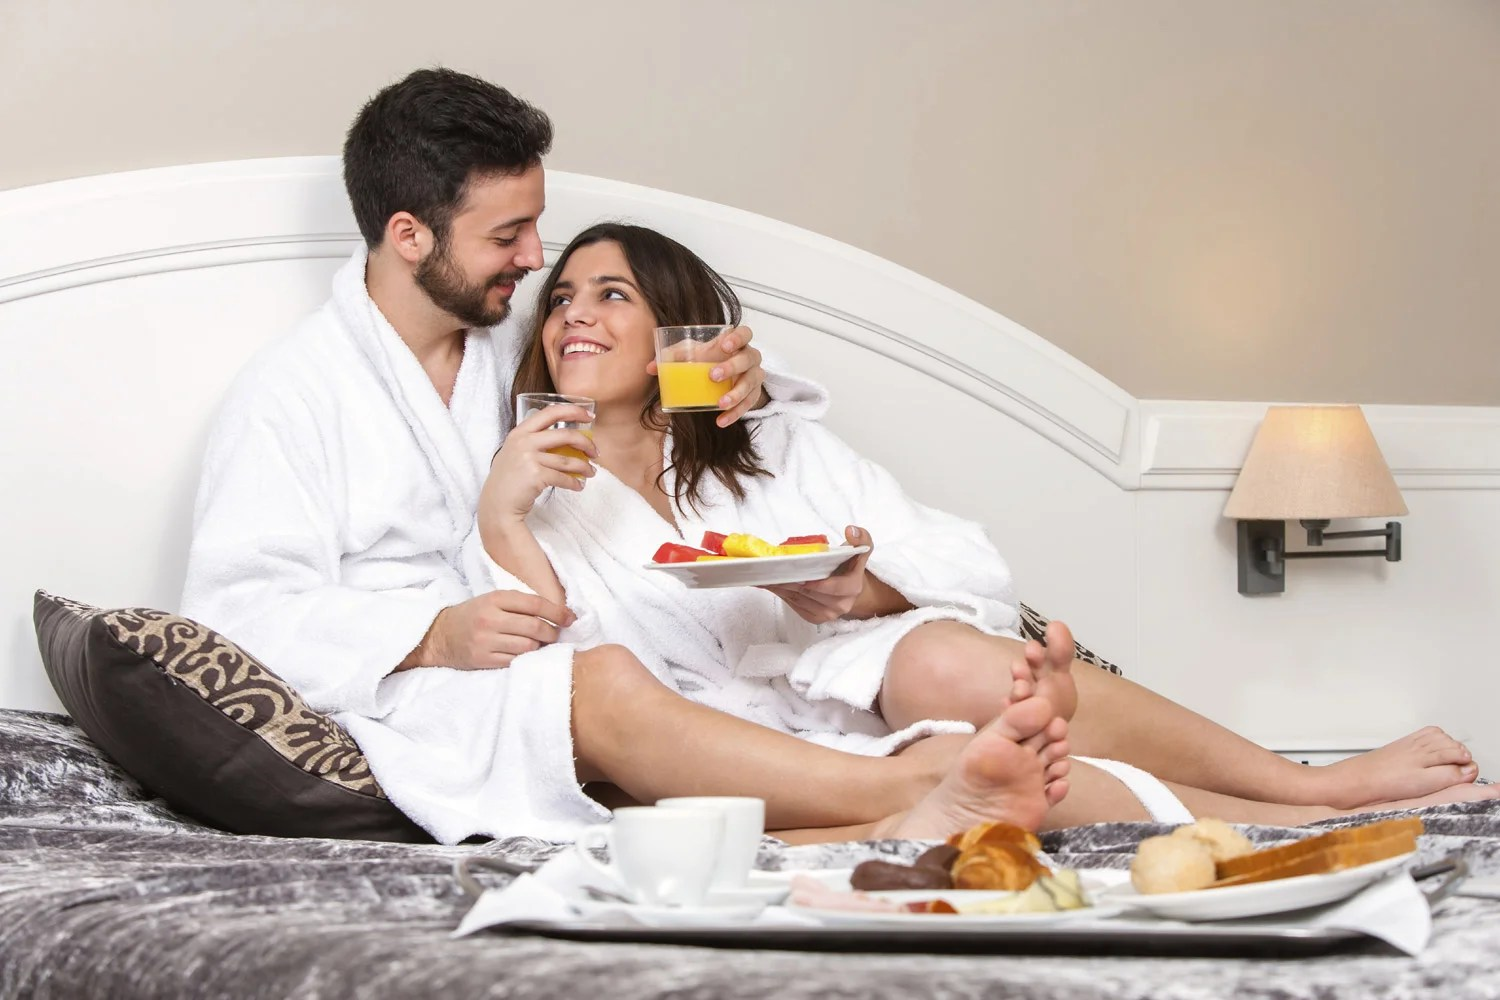 5 Of The Most Romantic Hotels In London For Valentines